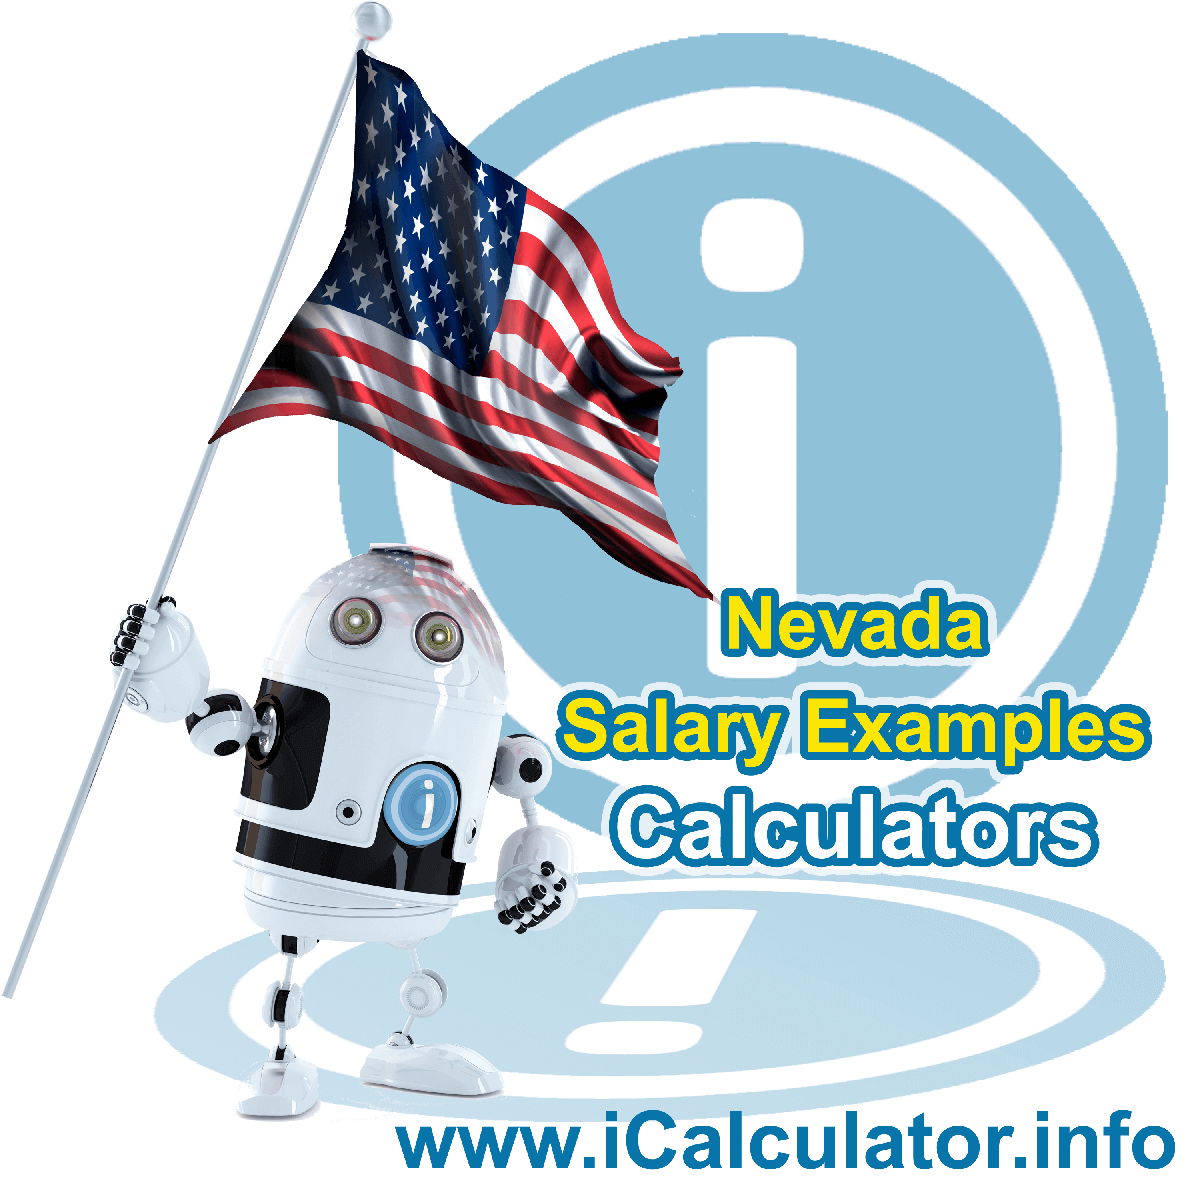 Nevada Salary Example for $160,000.00 in 2020 | iCalculator | $160,000.00 salary example for employee and employer paying Nevada State tincome taxes. Detailed salary after tax calculation including Nevada State Tax, Federal State Tax, Medicare Deductions, Social Security, Capital Gains and other income tax and salary deductions complete with supporting Nevada state tax tables